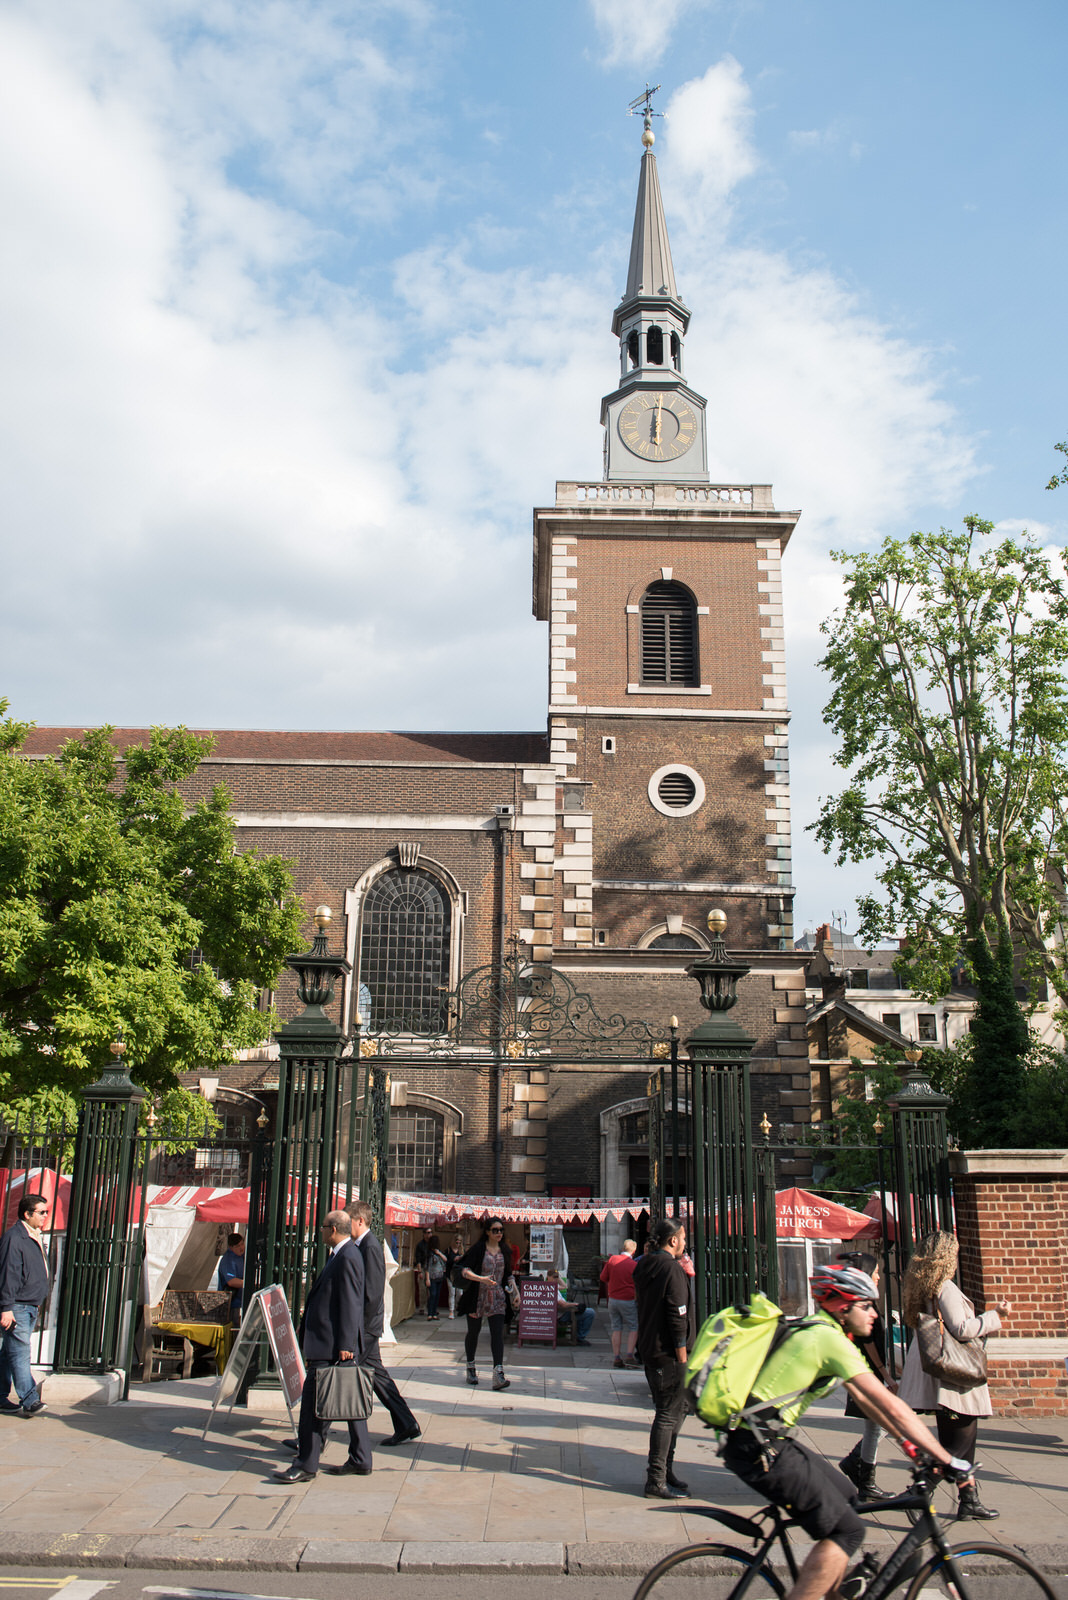 The venue, St James Church Piccadilly